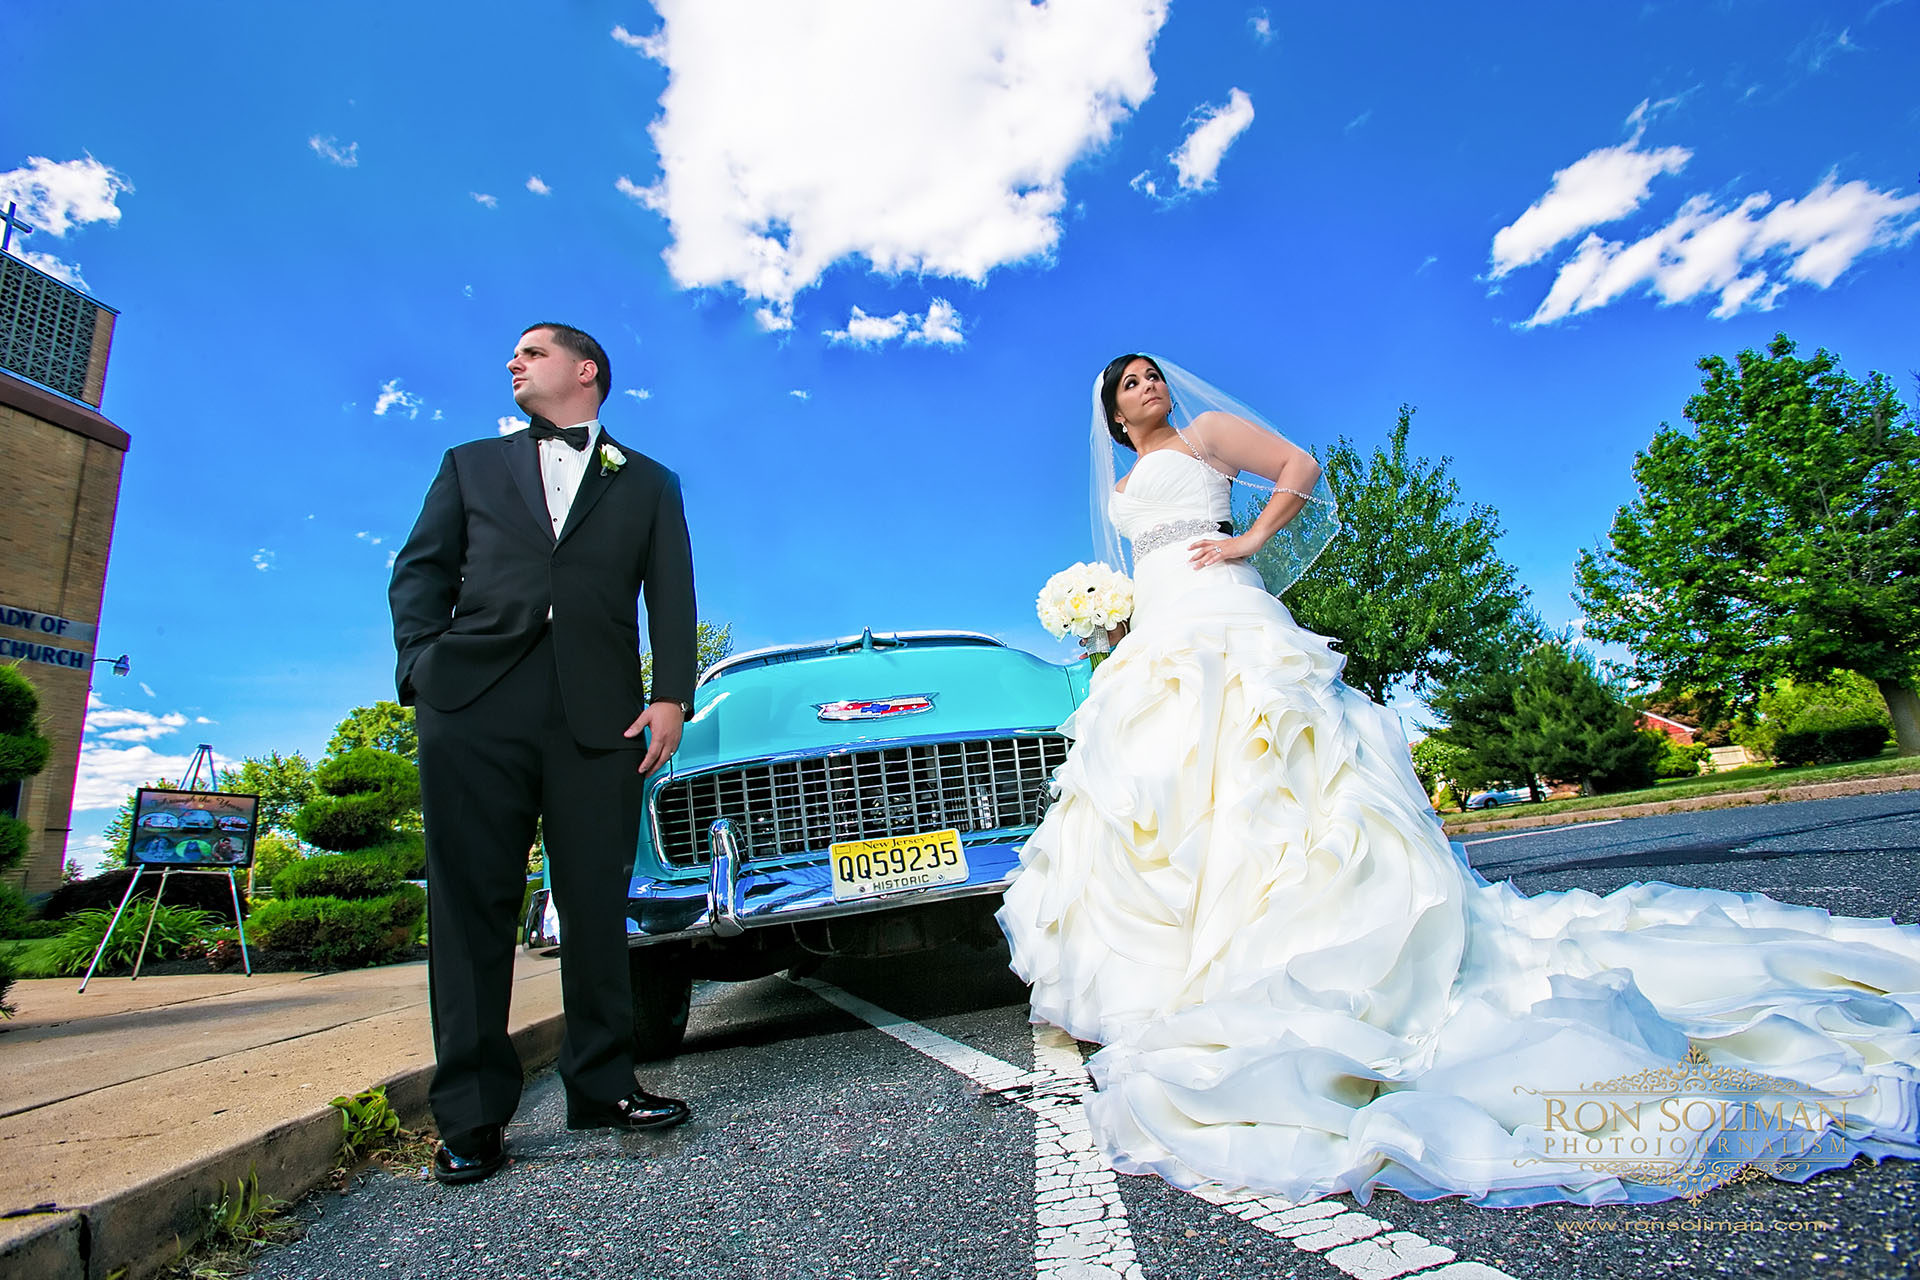 blue 1955 Chevy wedding car